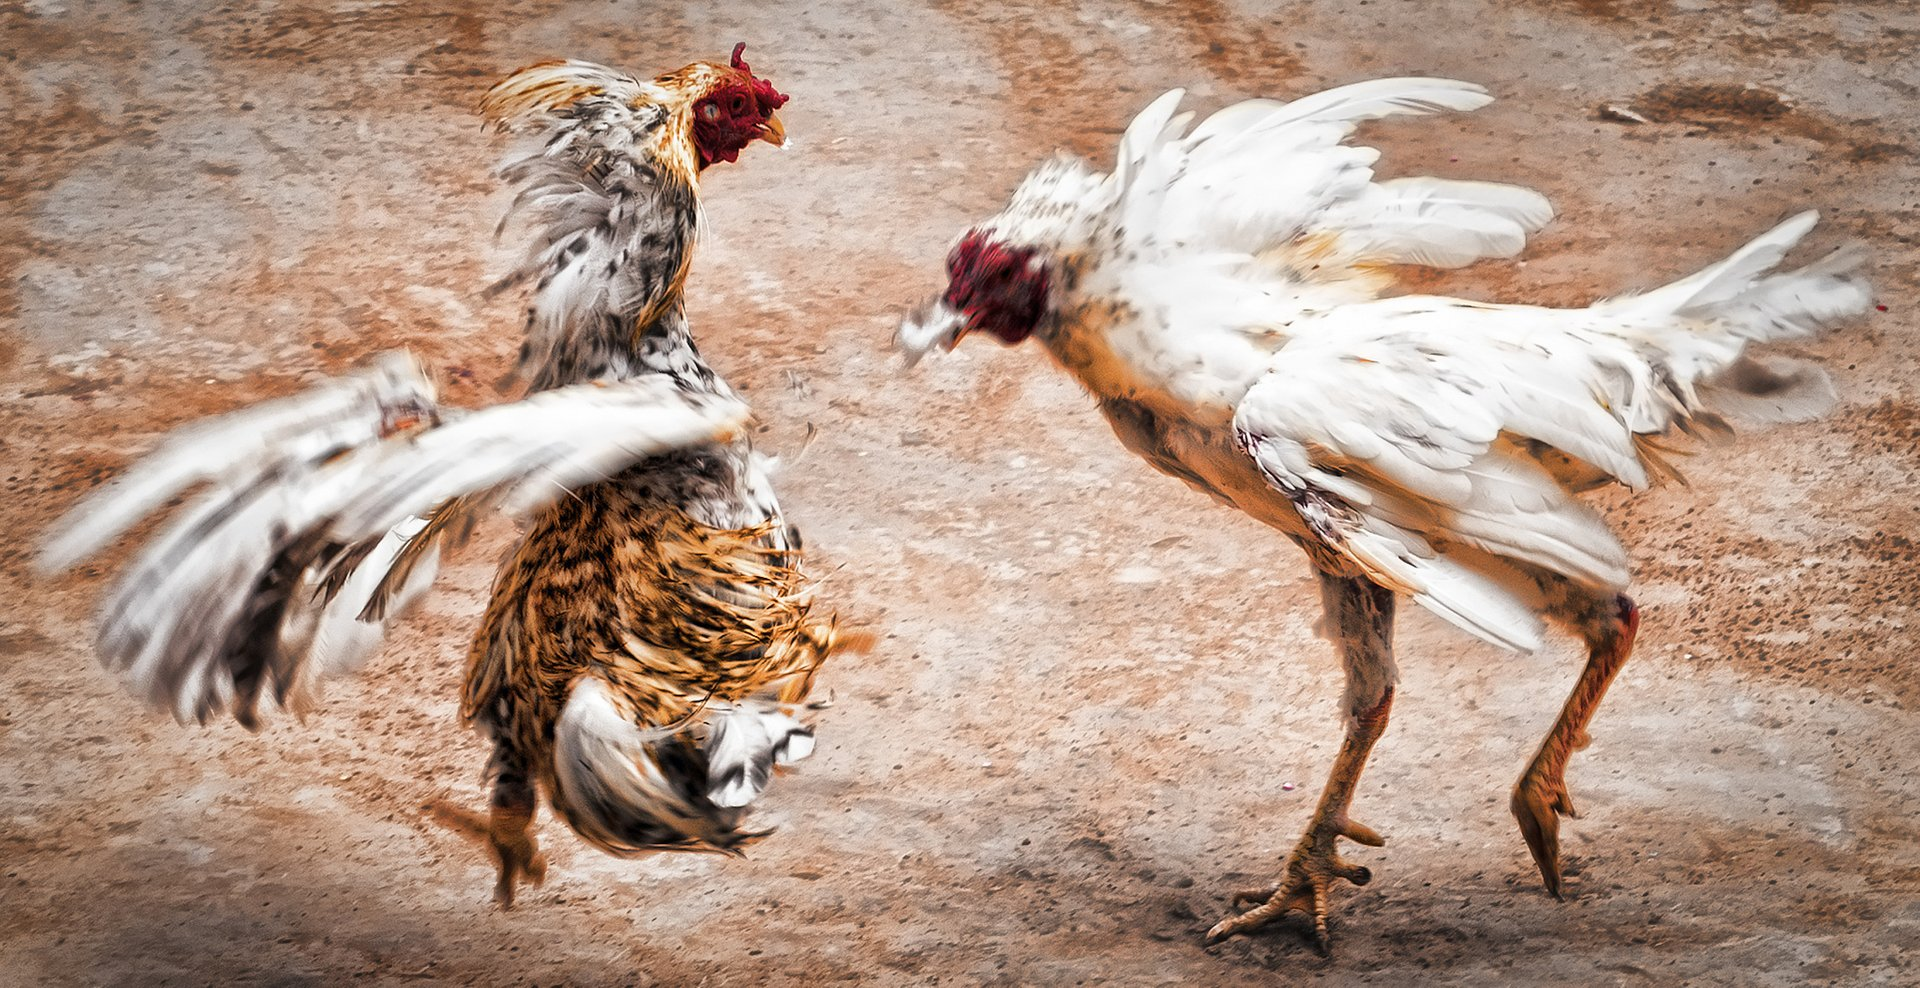 Cockfighting in Mexico 2020 - Best Time